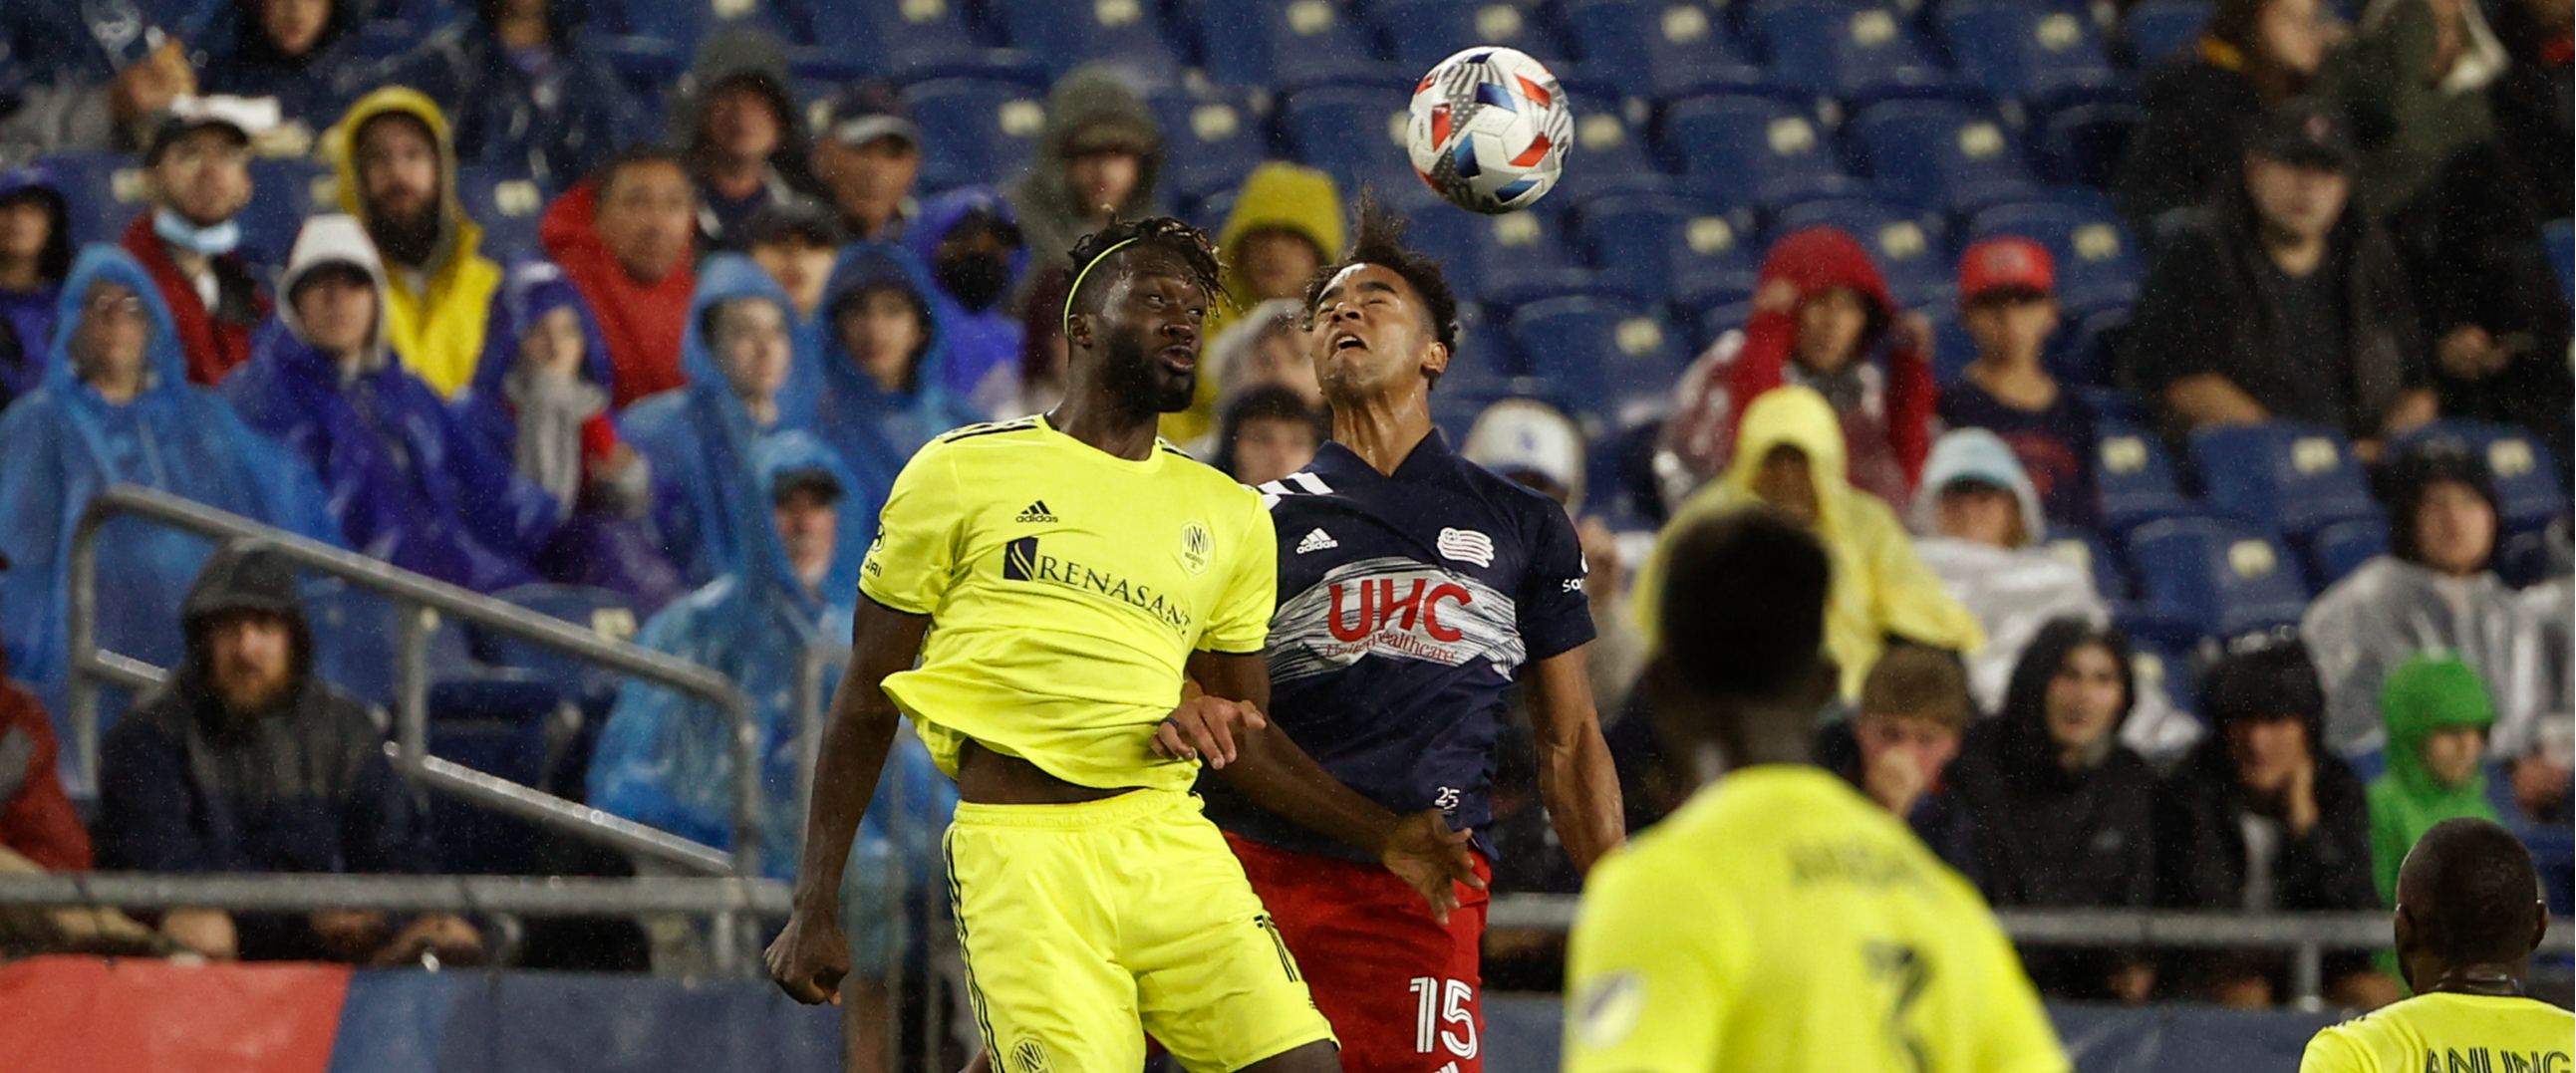 Nashville SC happy to draw 0-0 with New England